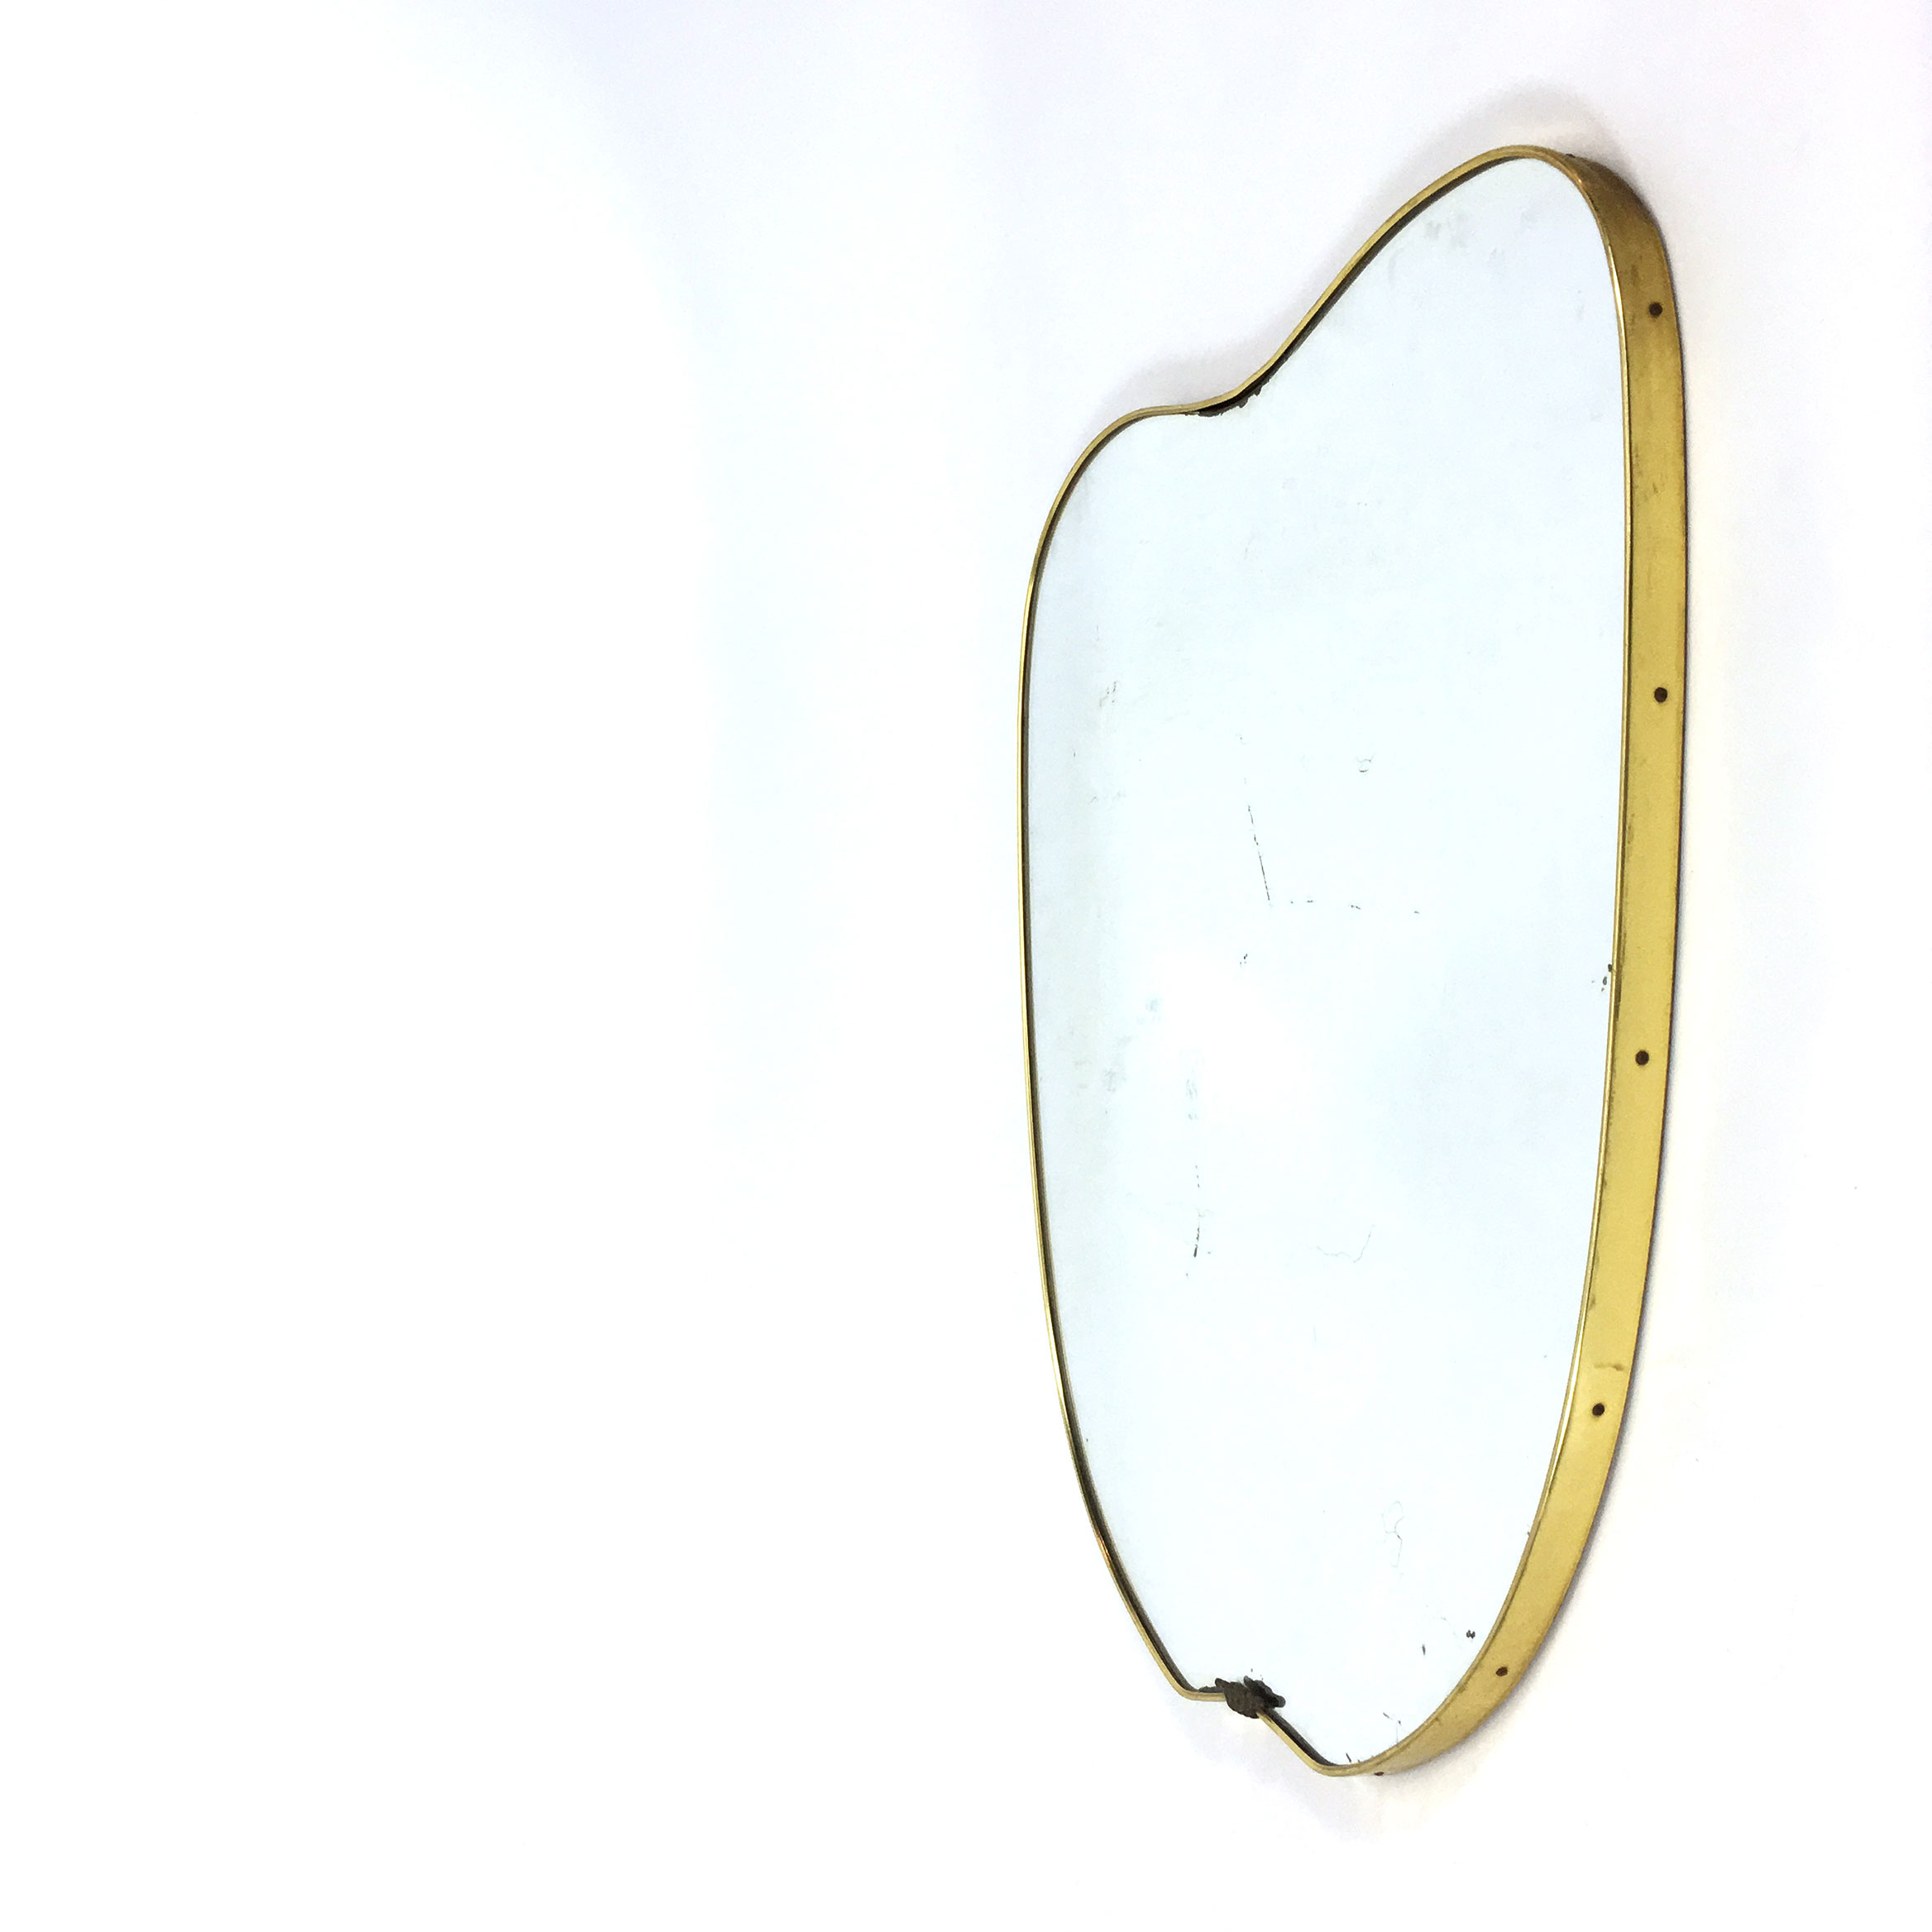 Golden framed mirror from the 50's-60's.